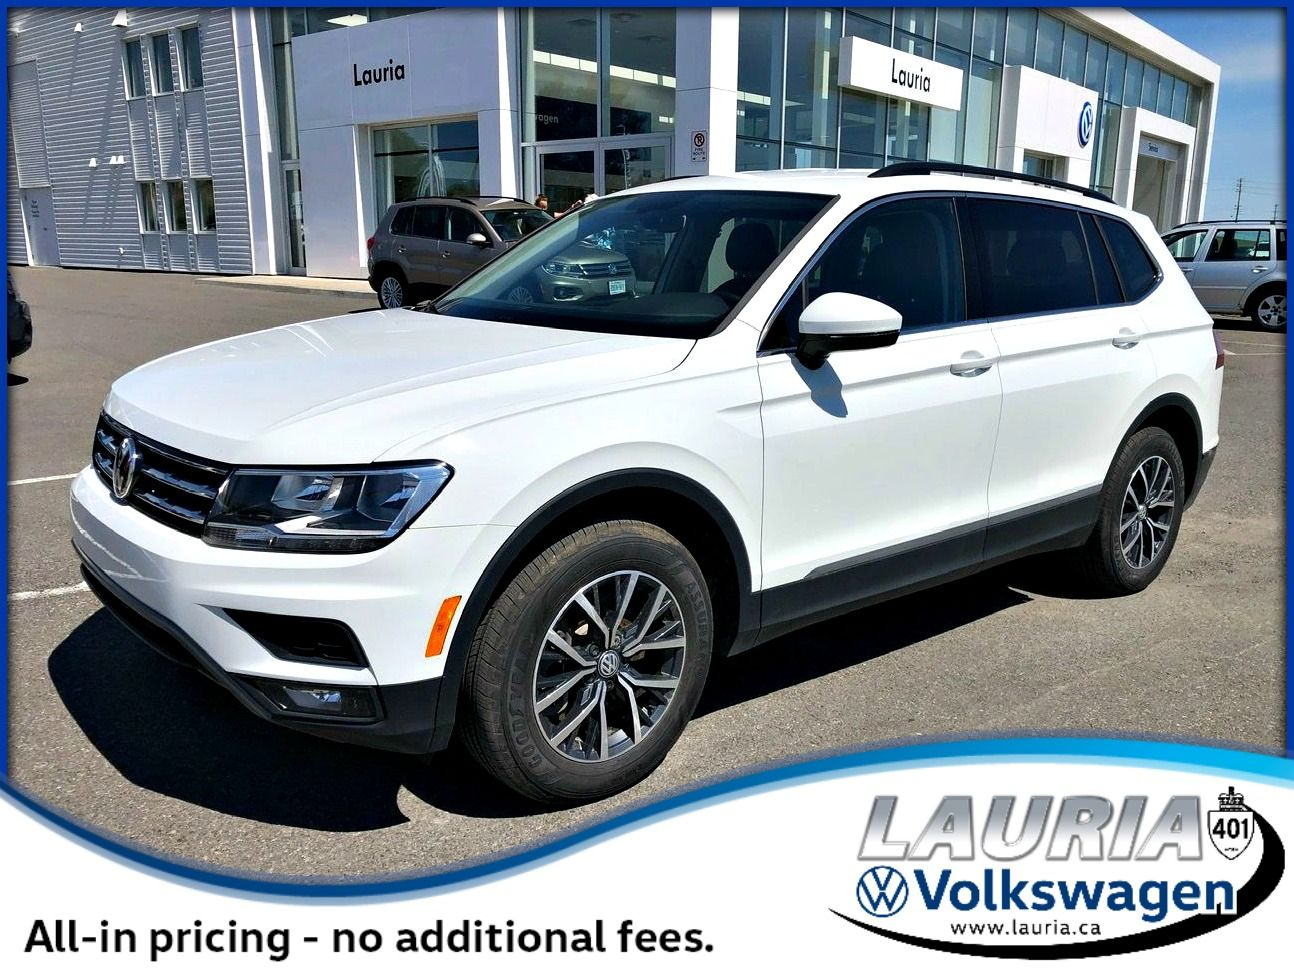 Certified Pre-Owned 2019 Volkswagen Tiguan 2.0T Comfortline 4Motion AWD - LOW KMS